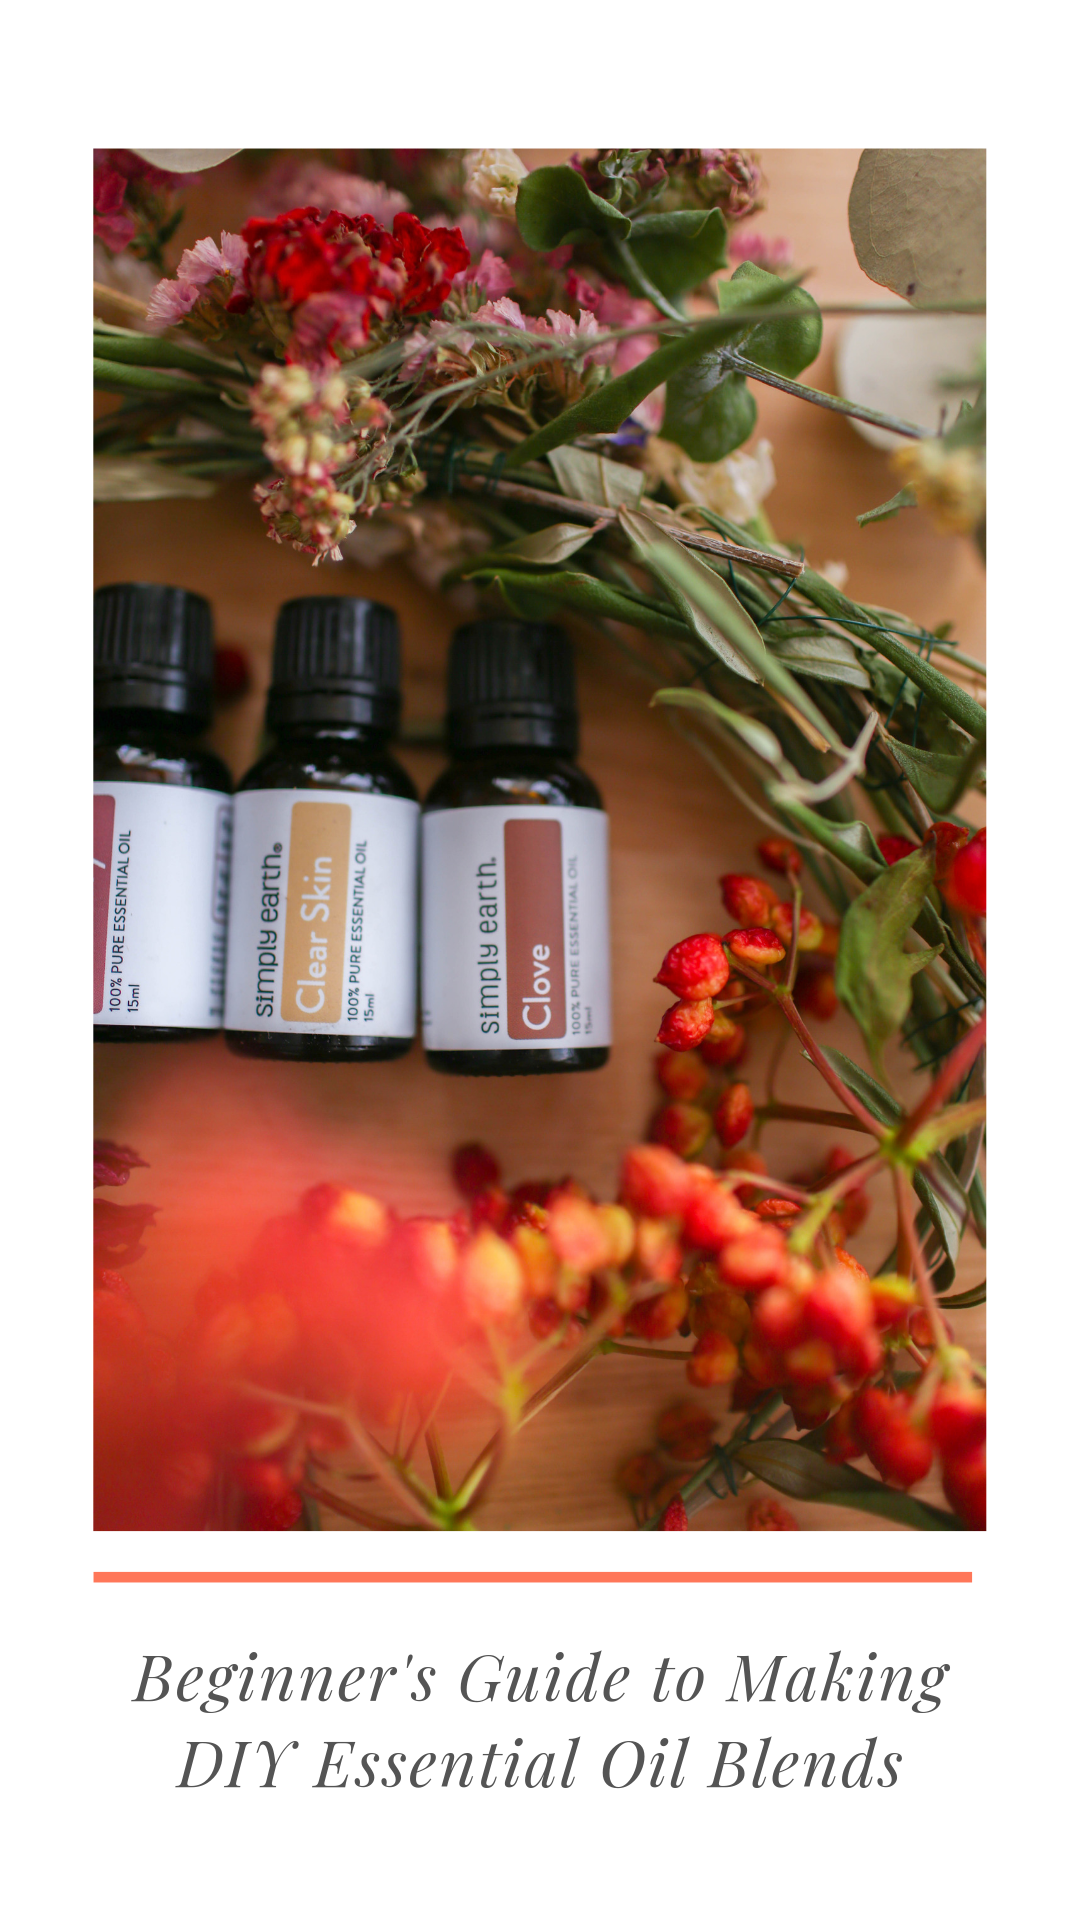 Gennifer Rose_Beginner's Guide to Making DIY Essential Oil Blends and Skincare Products.png